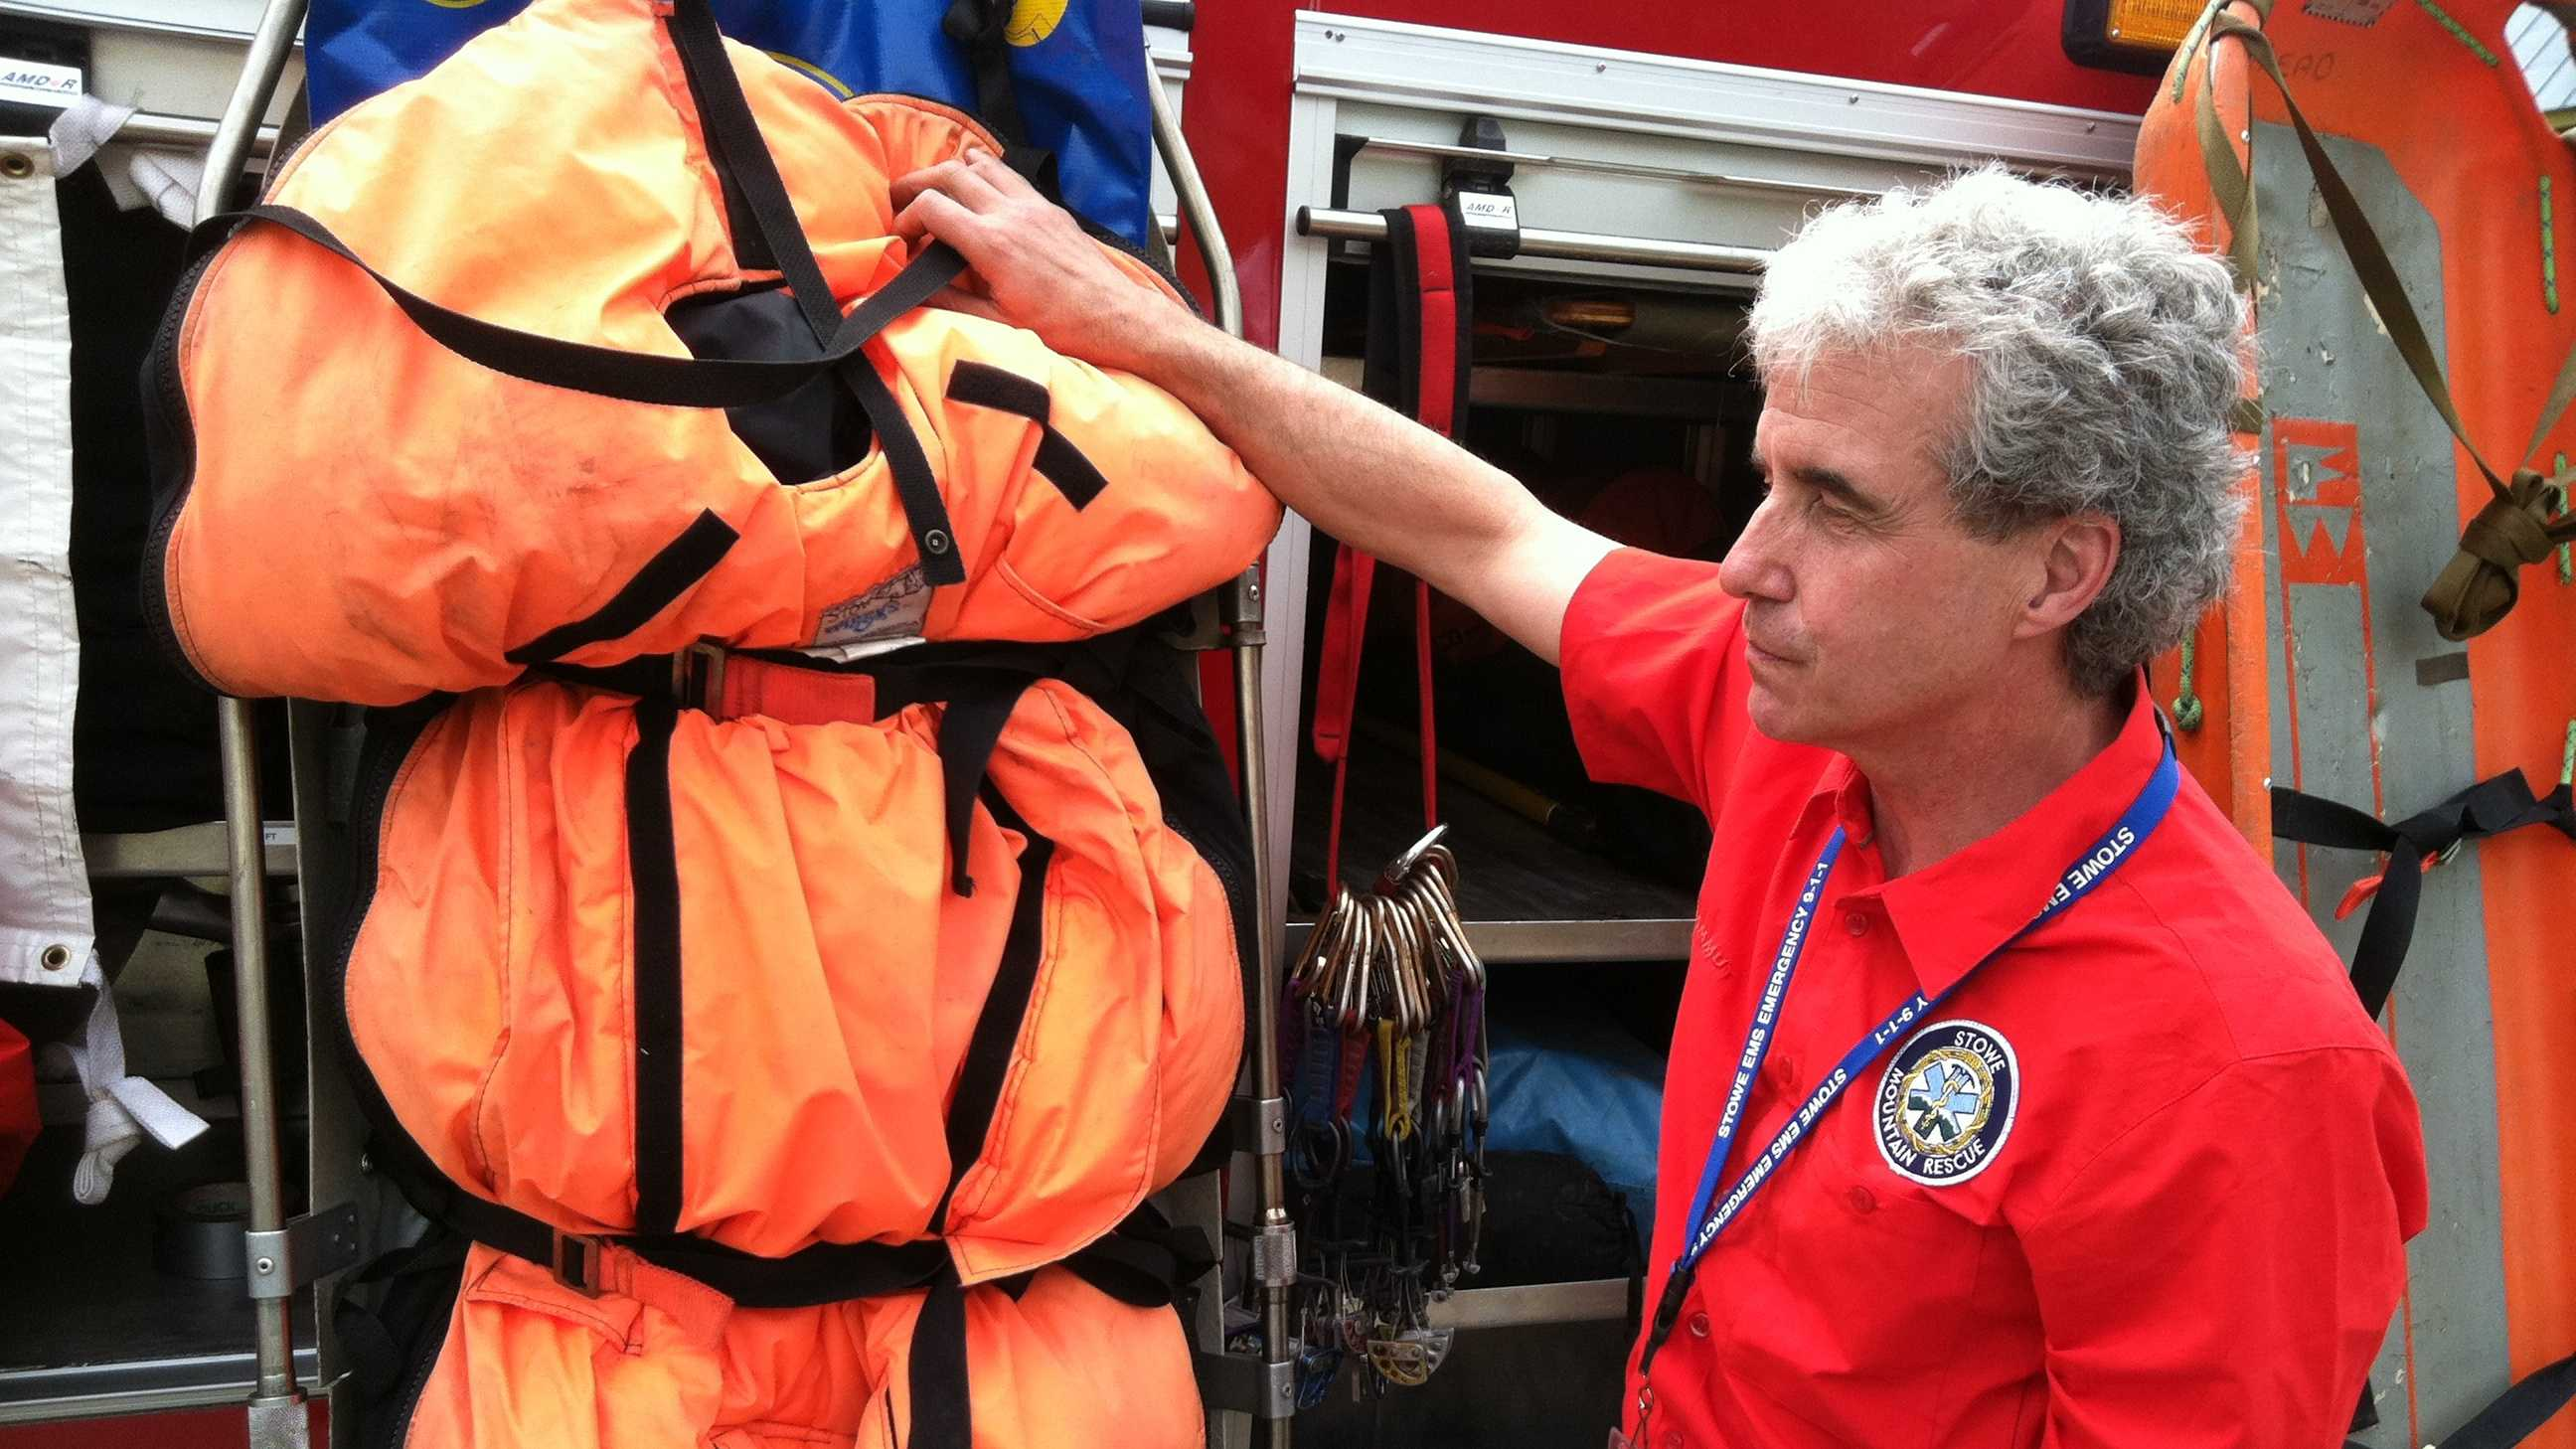 05-21-13 Vt. honors its (mostly volunteer) first responders - Stowe Mtn. Rescue - img